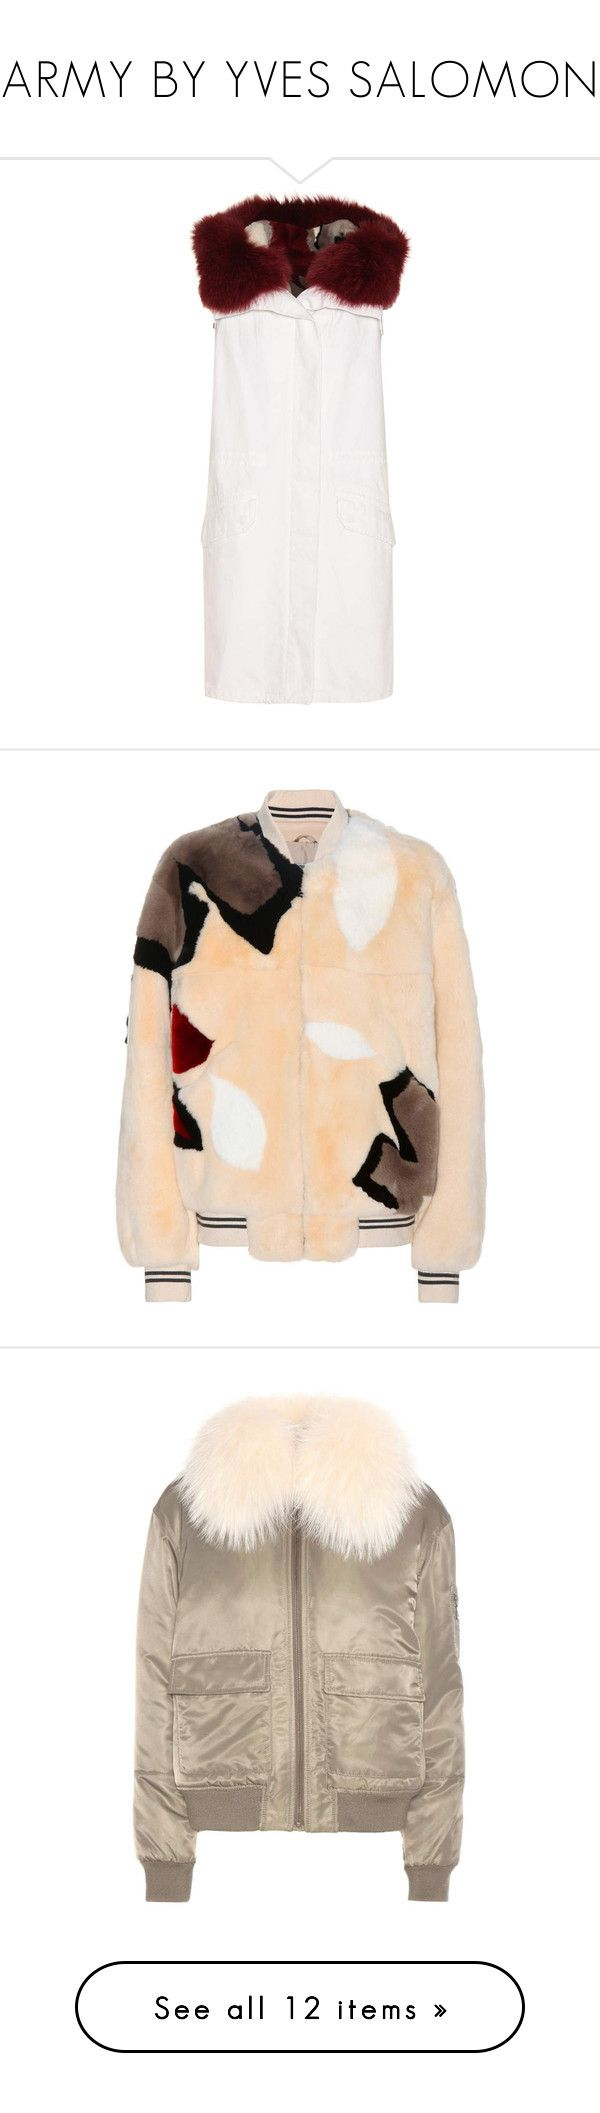 """ARMY BY YVES SALOMON"" by mari-sv ❤ liked on Polyvore featuring outerwear, vests, jackets, multicoloured, reversible vest, white vest, white fur vests, white waistcoat, fur waistcoat and multi color fur jacket"